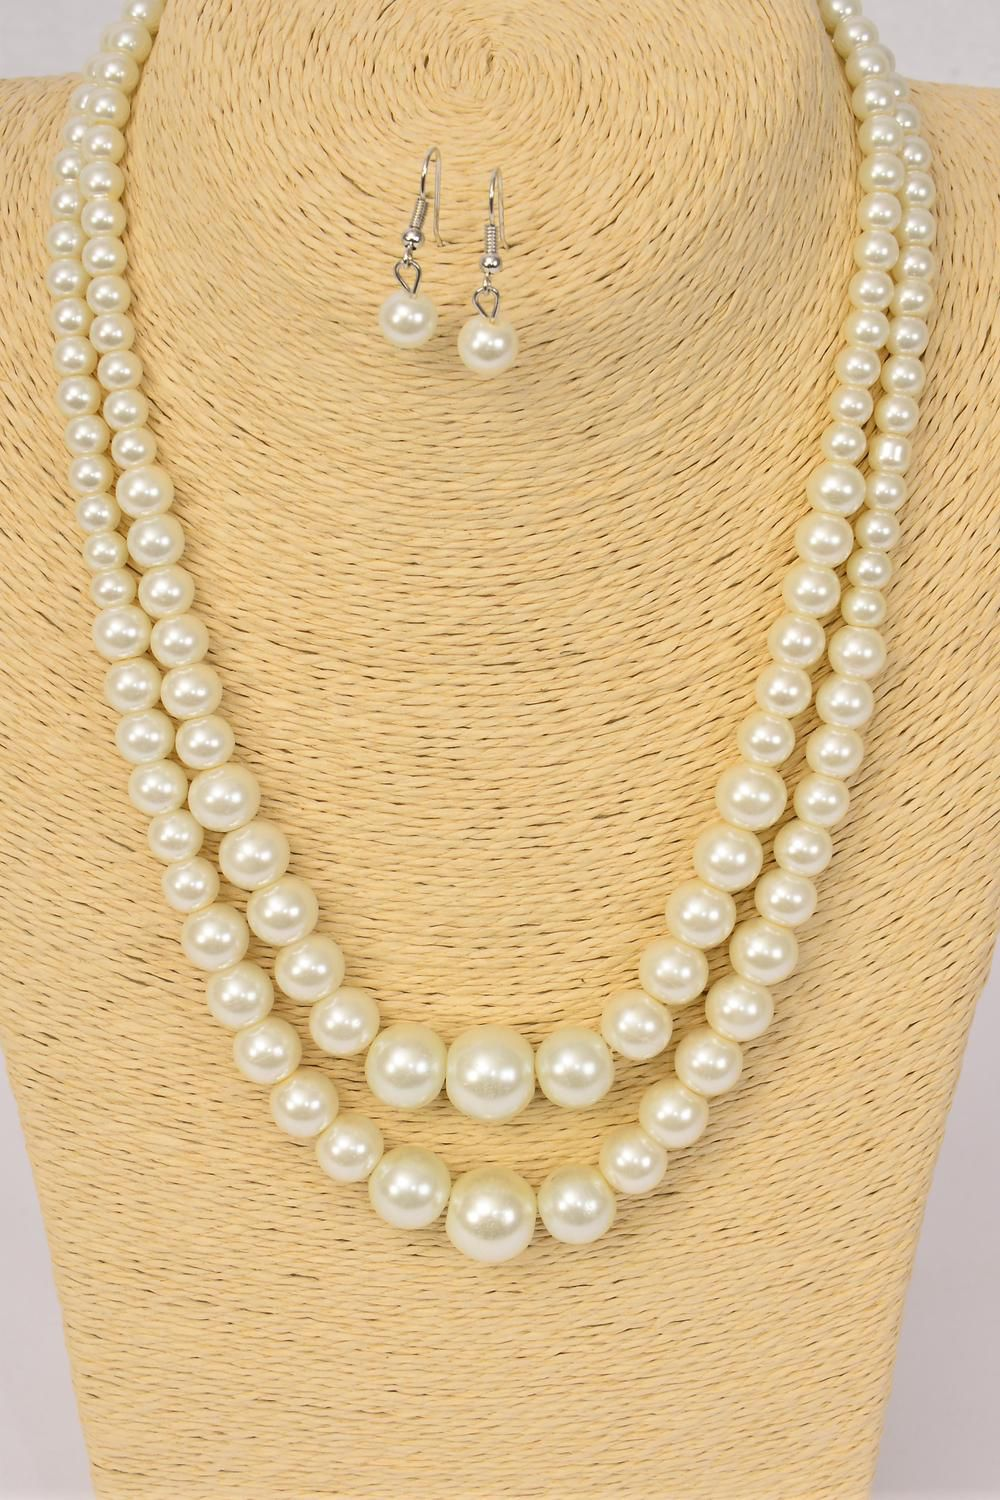 "Necklace Sets Graduated From 14 mm Glass Pearls Cream Pearl/DZ **Cream Pearl** 20"" Long, Hang Tag & Opp Bag & UPC Code"